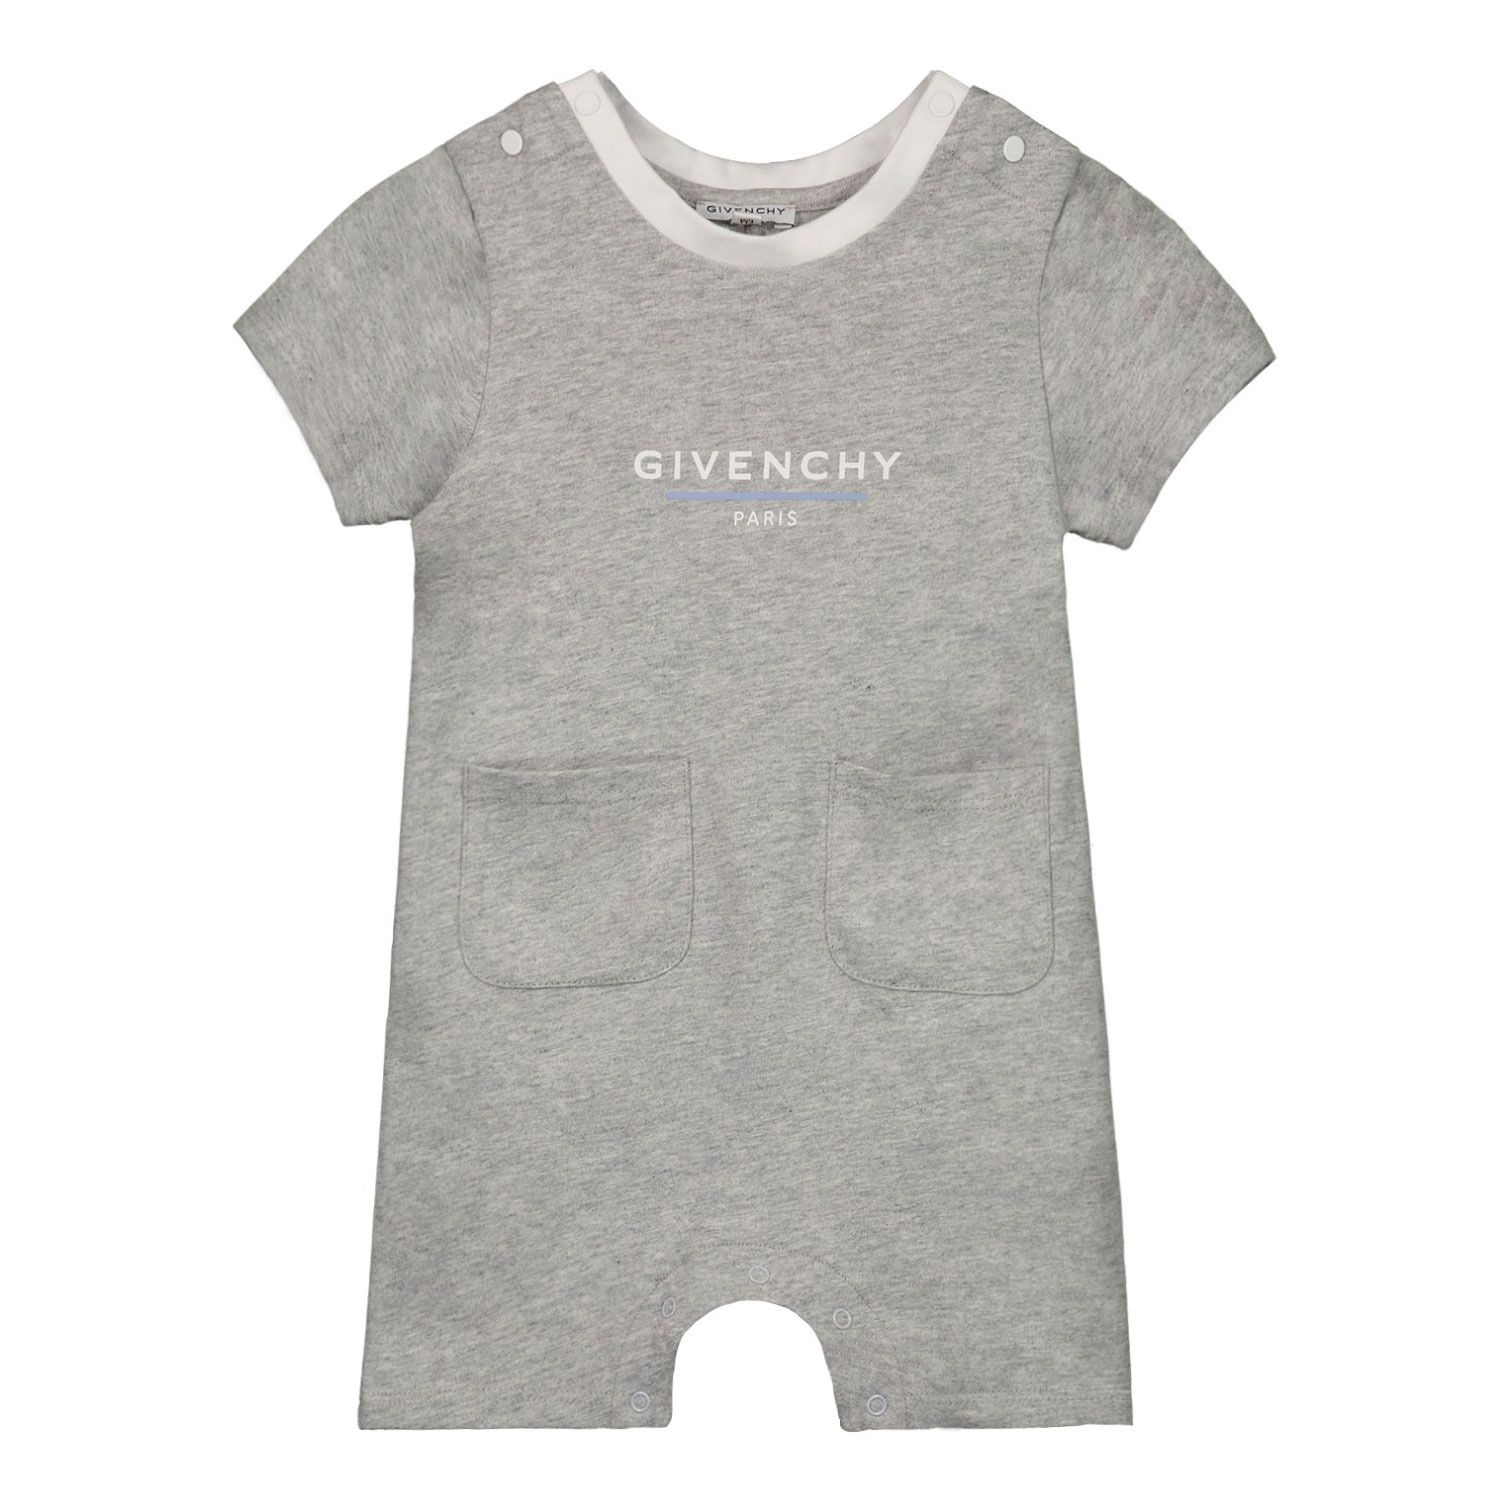 Picture of Givenchy H94055 baby playsuit light gray